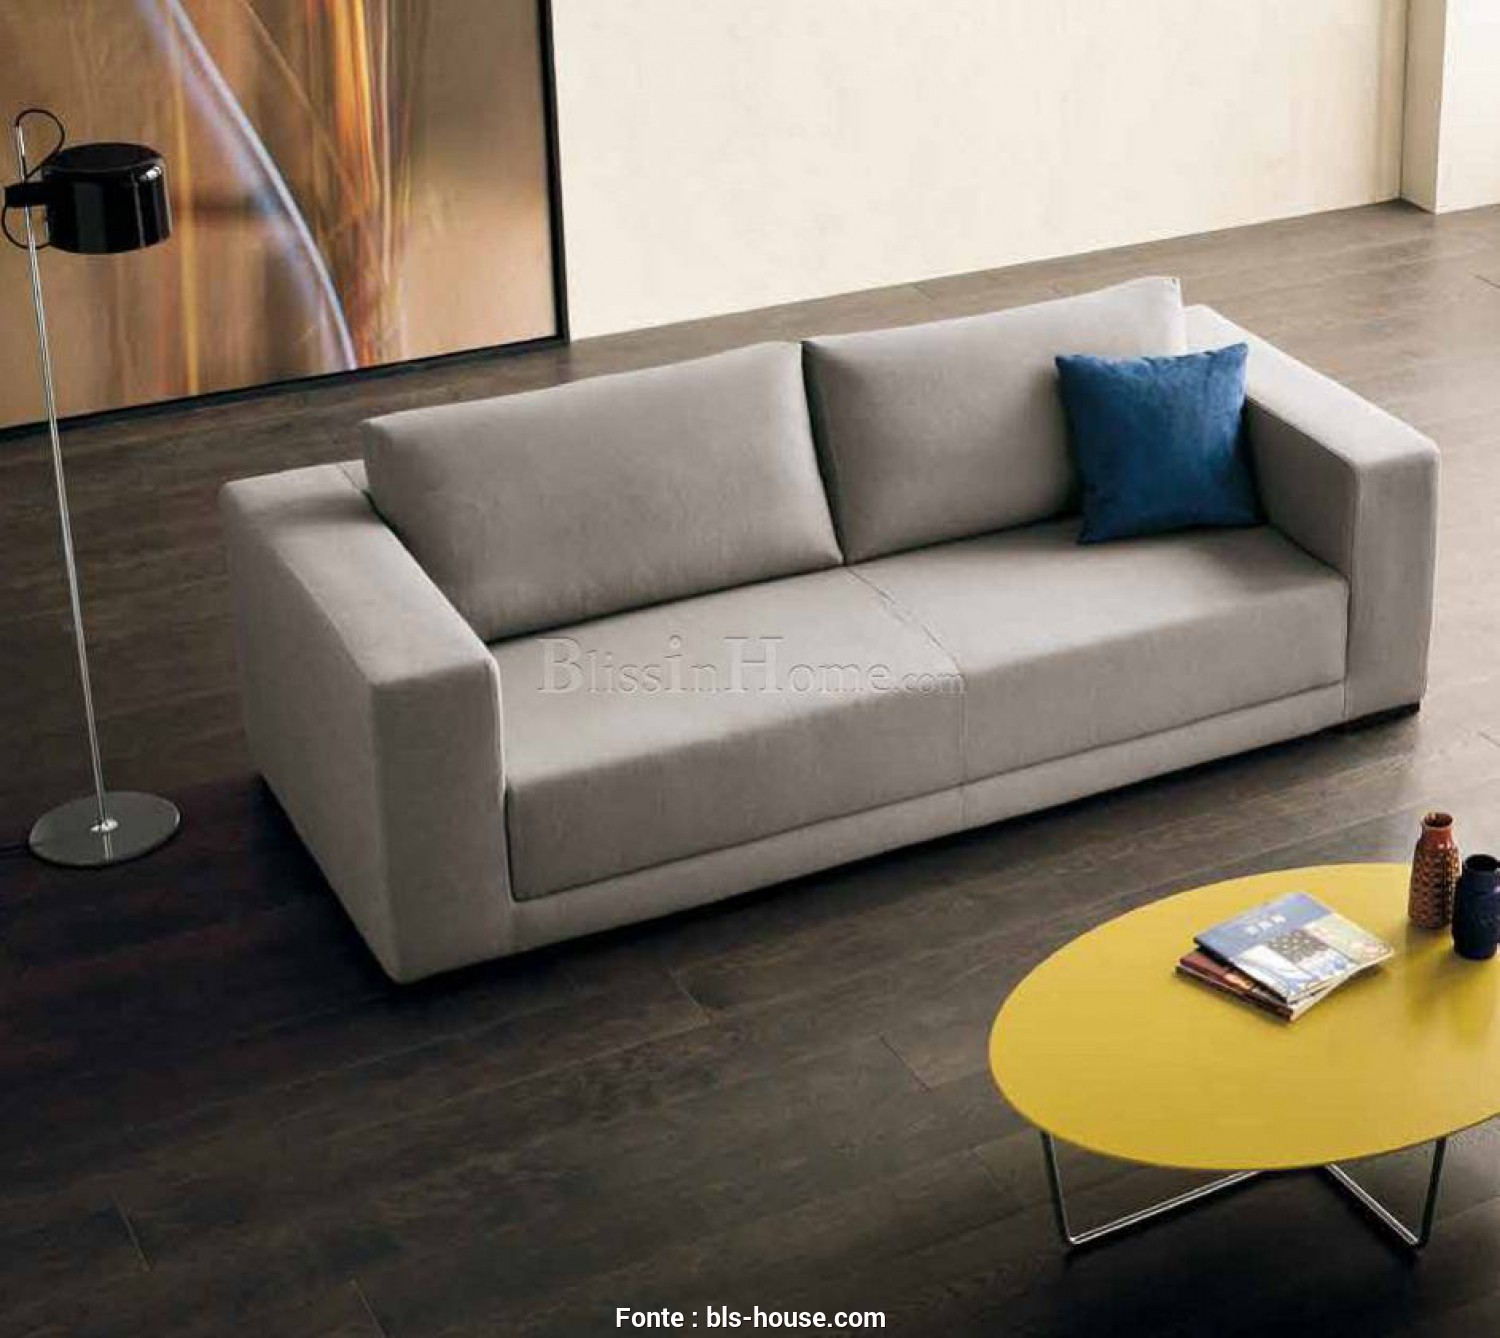 Poltronesofà Divano A 99 Euro, Esclusivo Buy Cheaper Divani, Poltrone Sofa Teorema 2, From Italy In